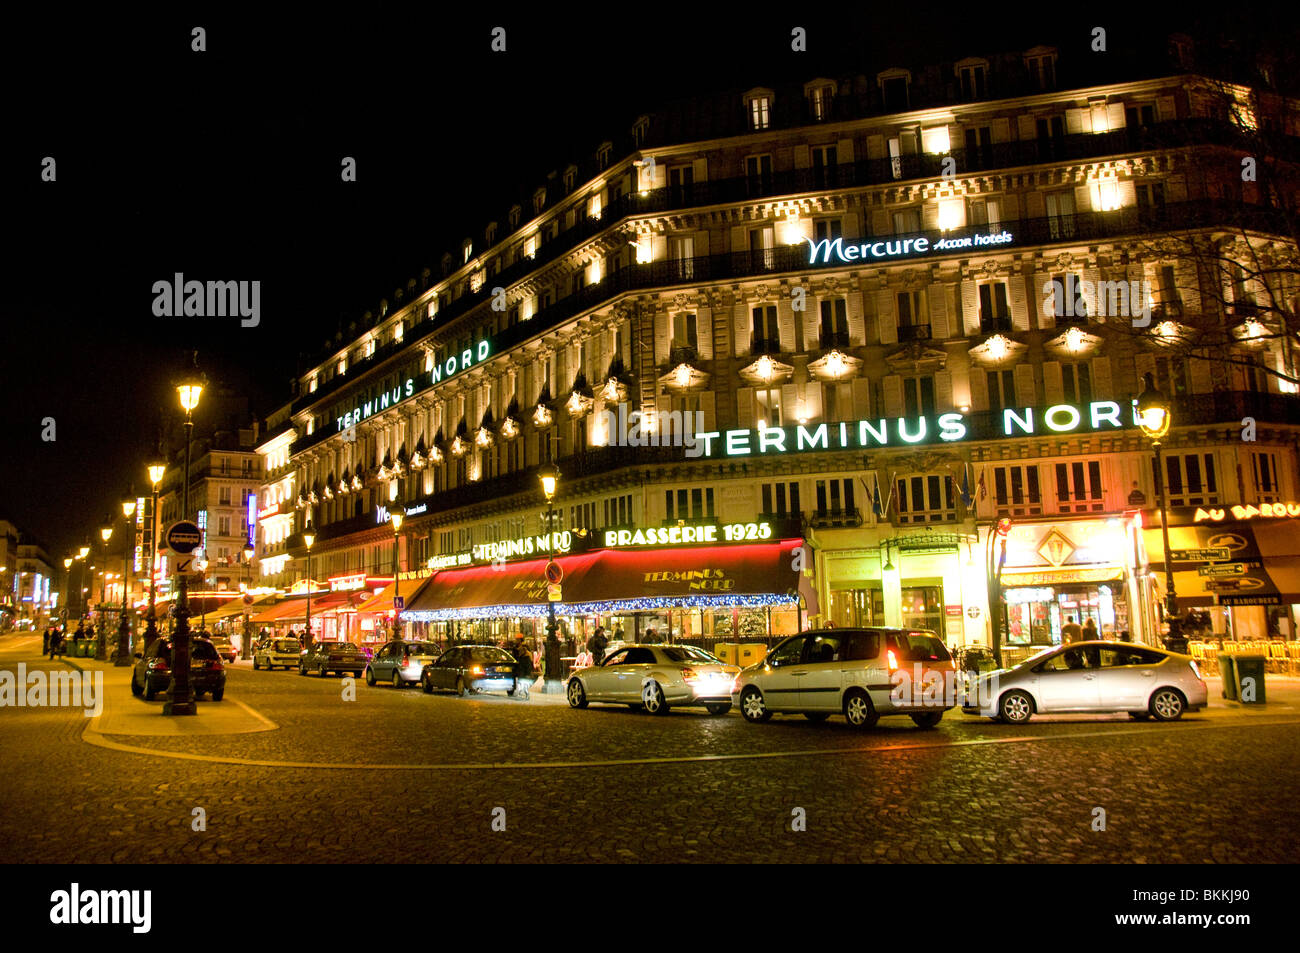 Terminus Nord outside Gare du Nord in Paris - Stock Image